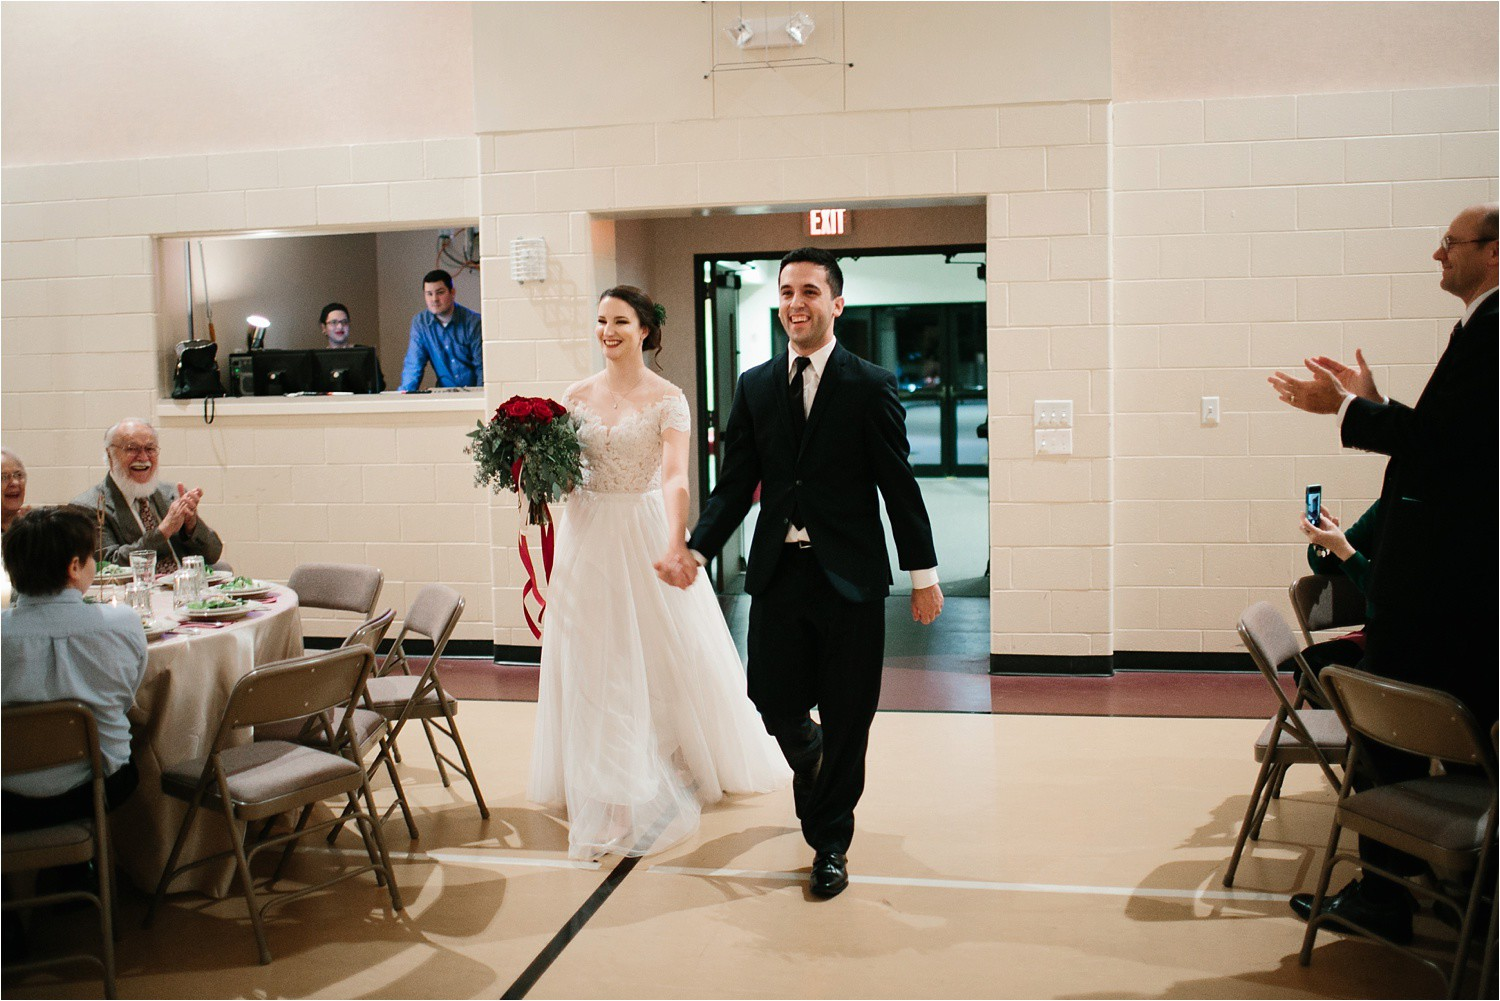 Alaina + Josh __ a wintertime wedding in Houston, TX with Christmas accents and a BHLDN dress by North Texas Wedding Photographer Rachel Meagan Photography _ 60